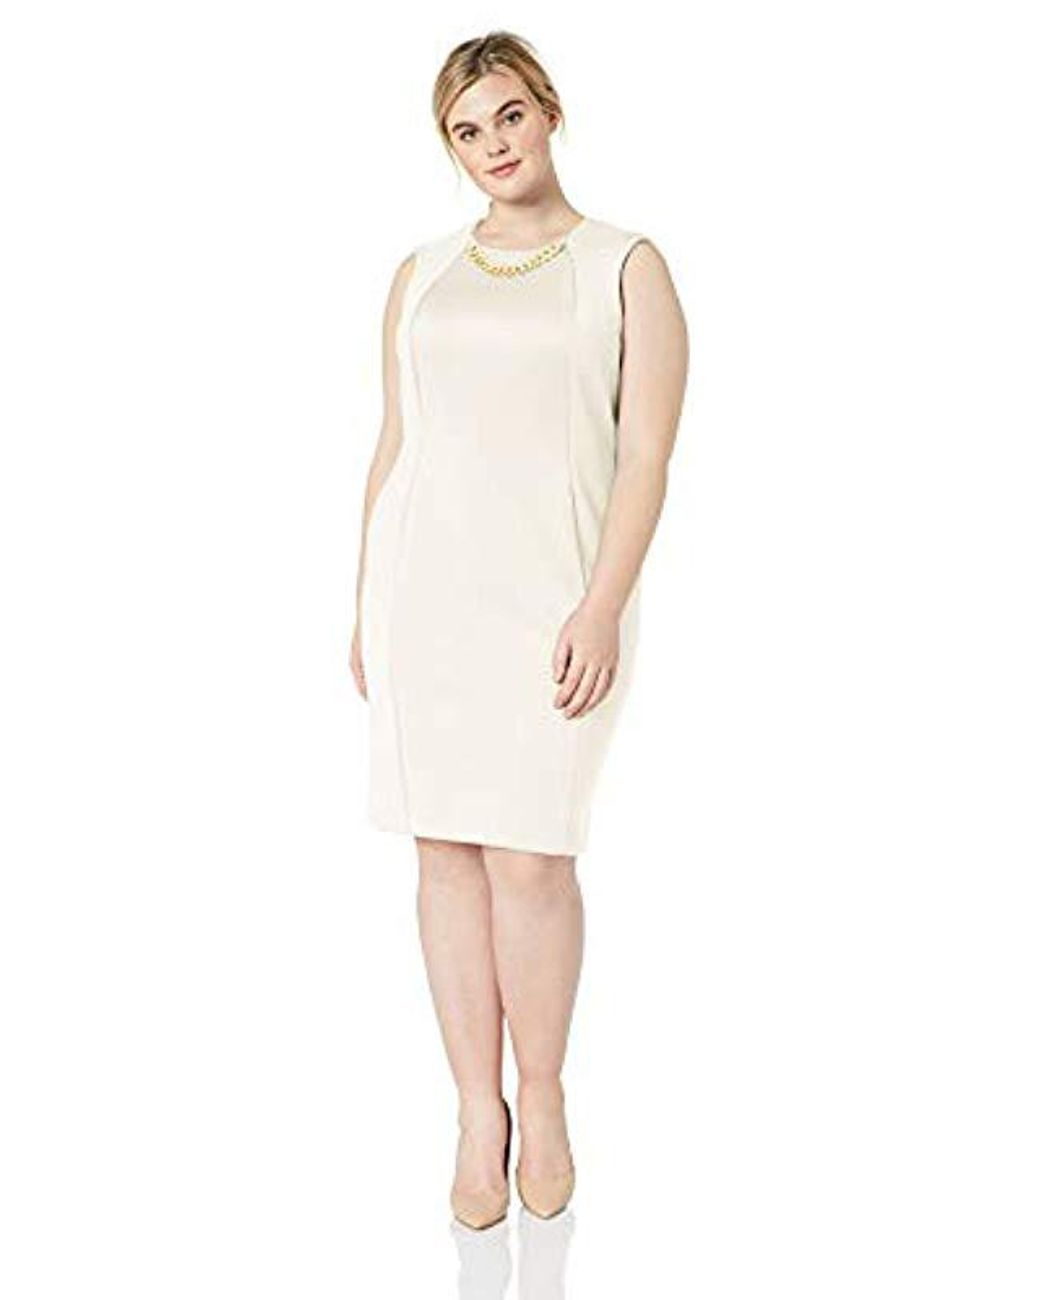 Plus Size Sleeveless Sheath With Chain Necklace Dress